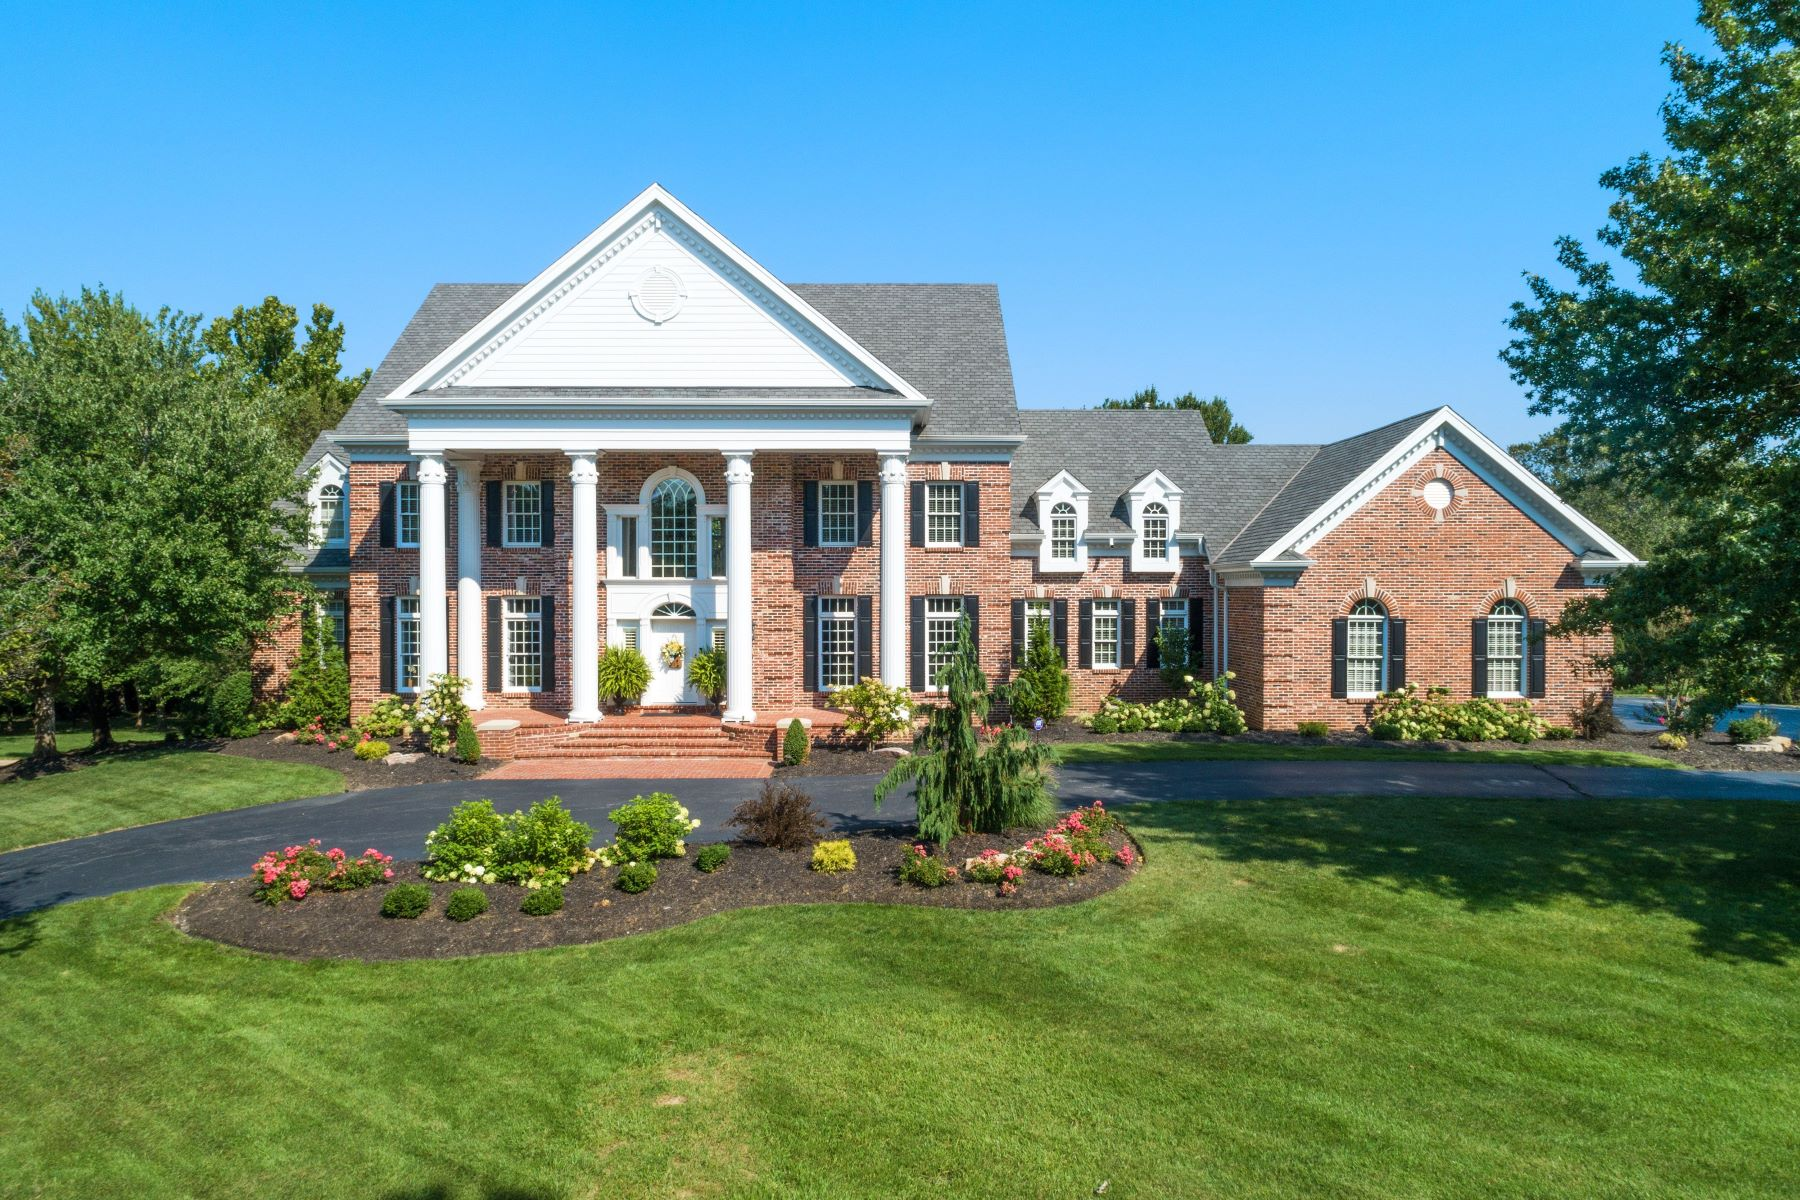 Single Family Homes for Sale at Exquisite Estate in Prestigious Highland Pointe 1120 Highland Pointe Drive St. Louis, Missouri 63131 United States